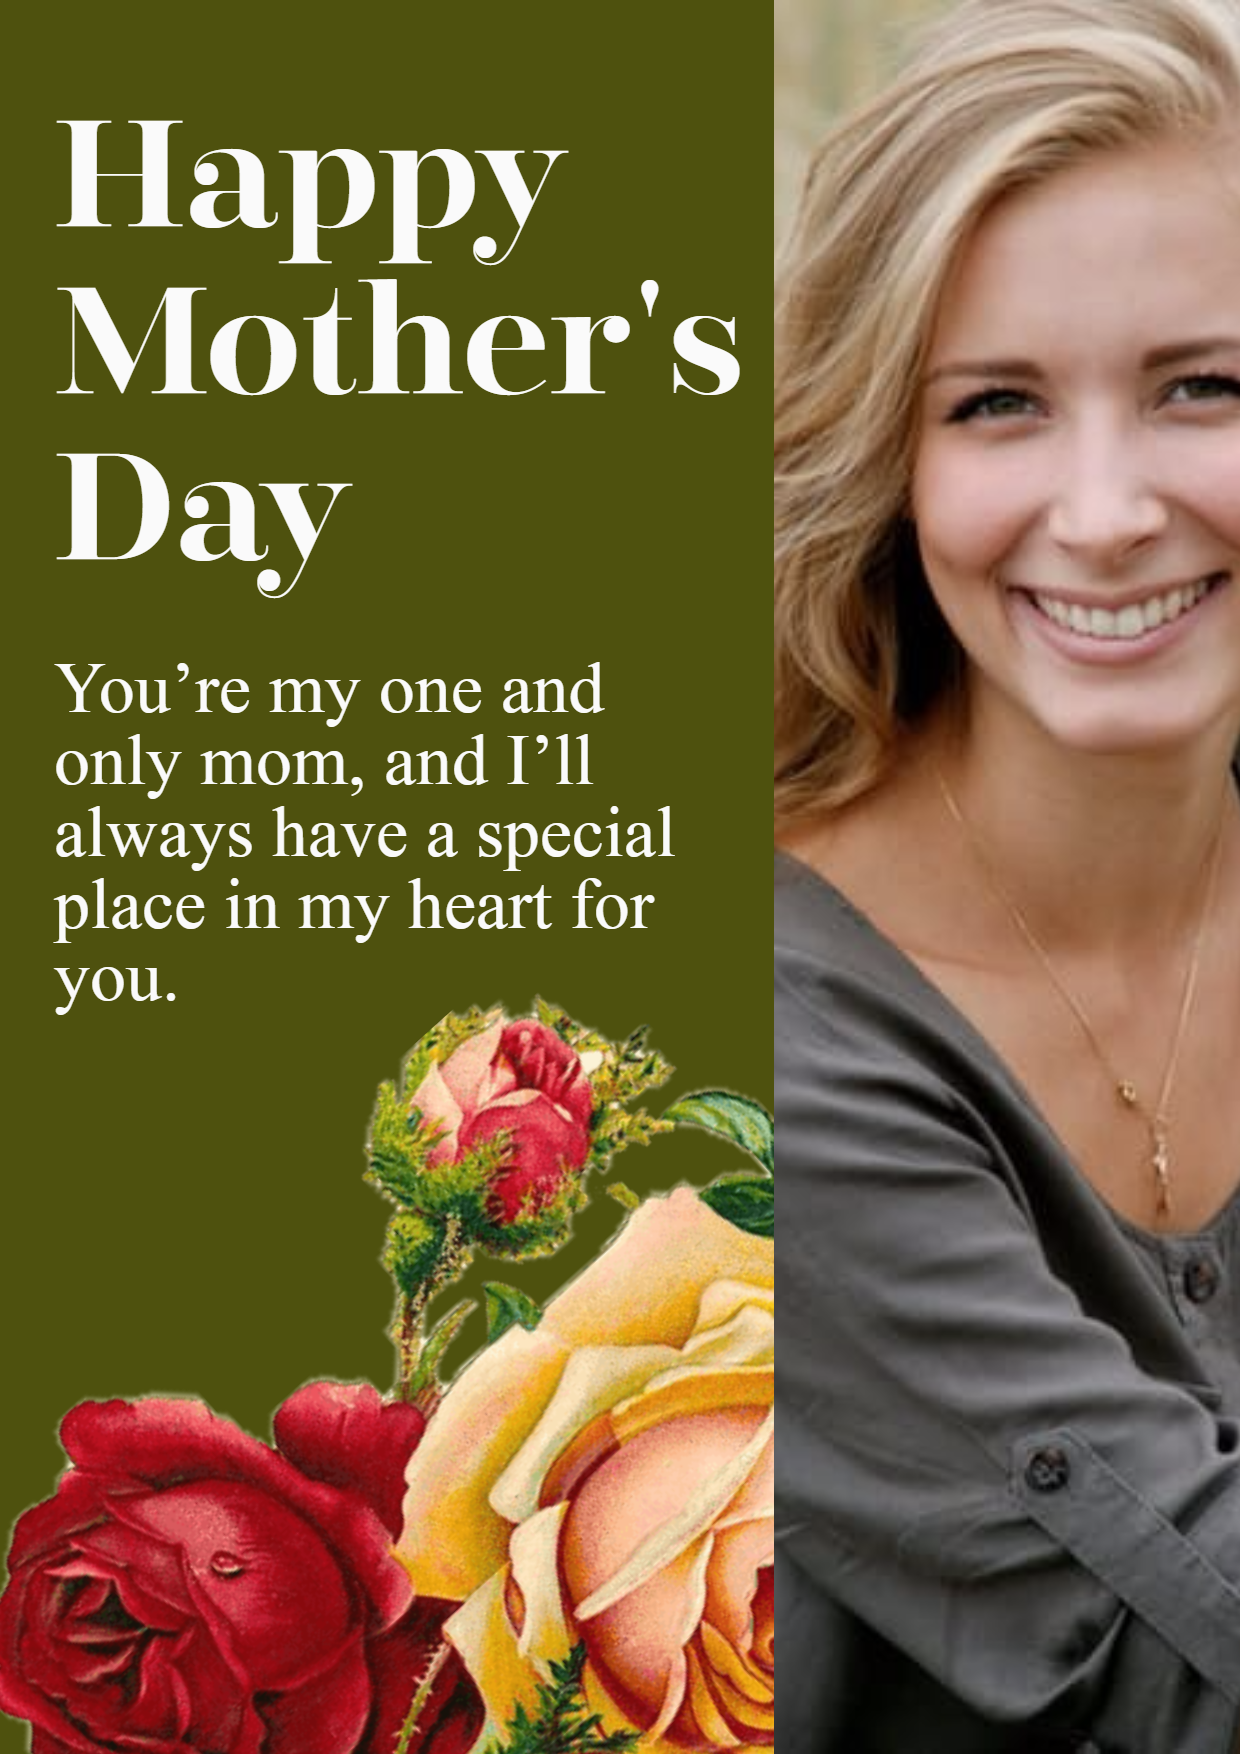 Happy mother's day #anniversary #mom Design  Template